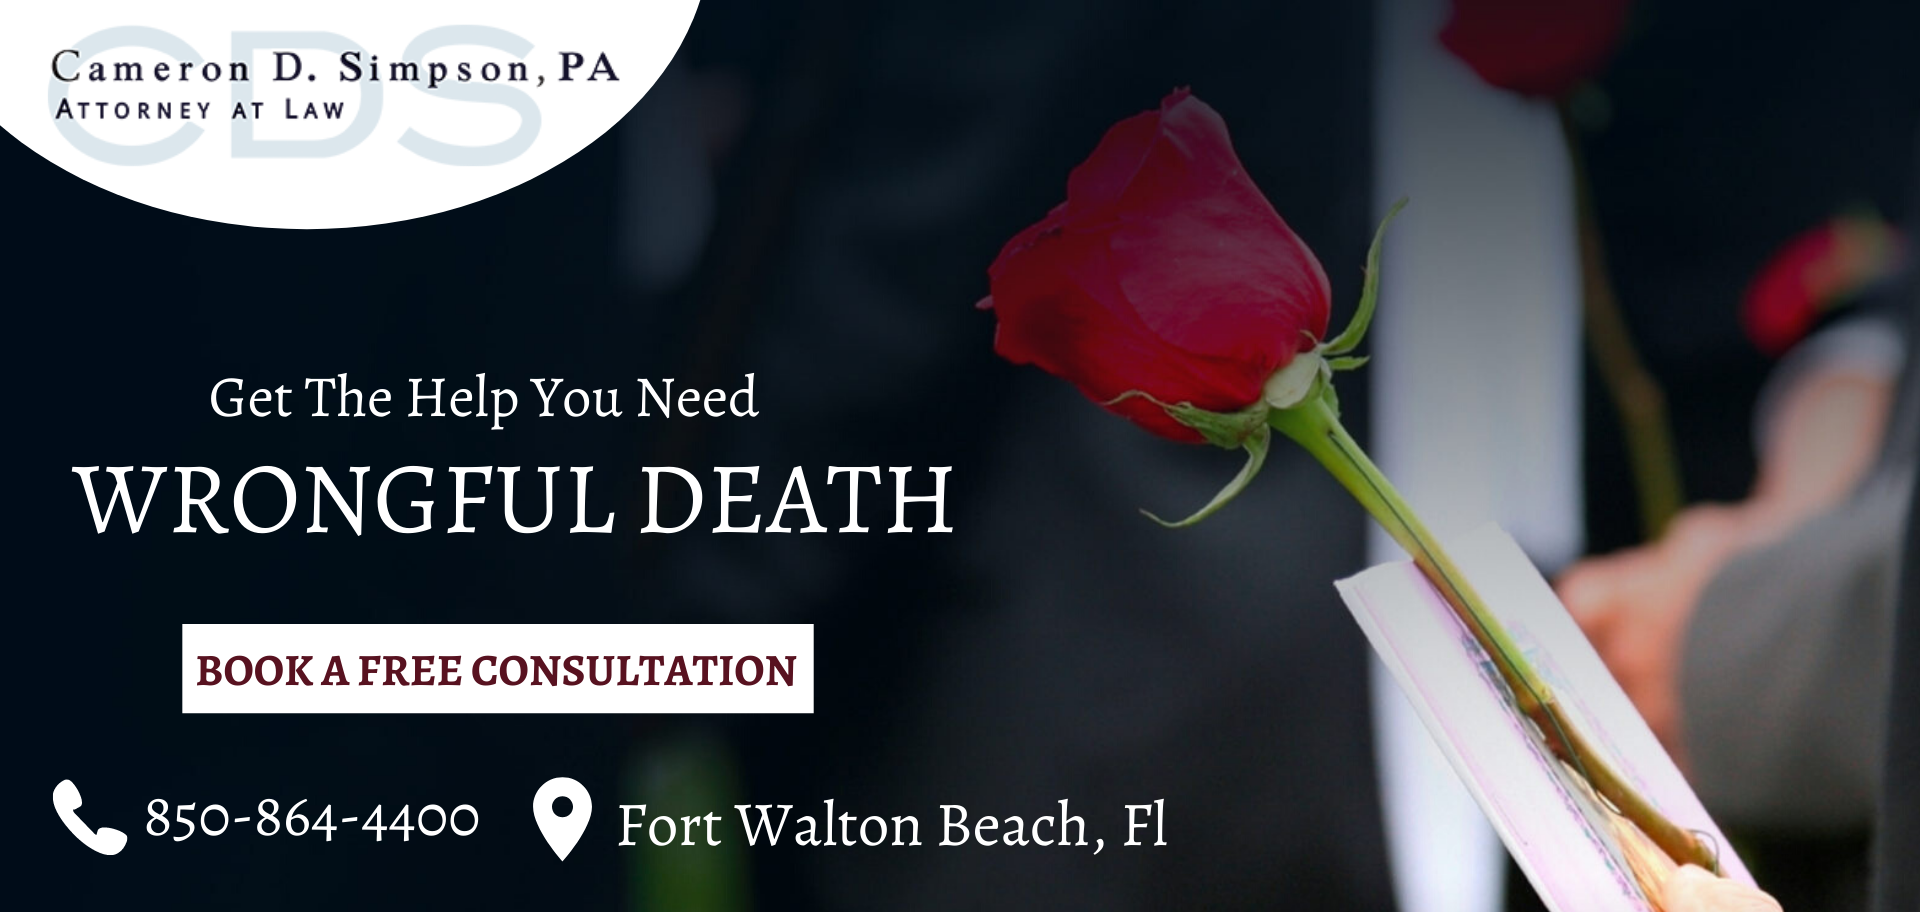 Professional Lawyers for Your Grieving